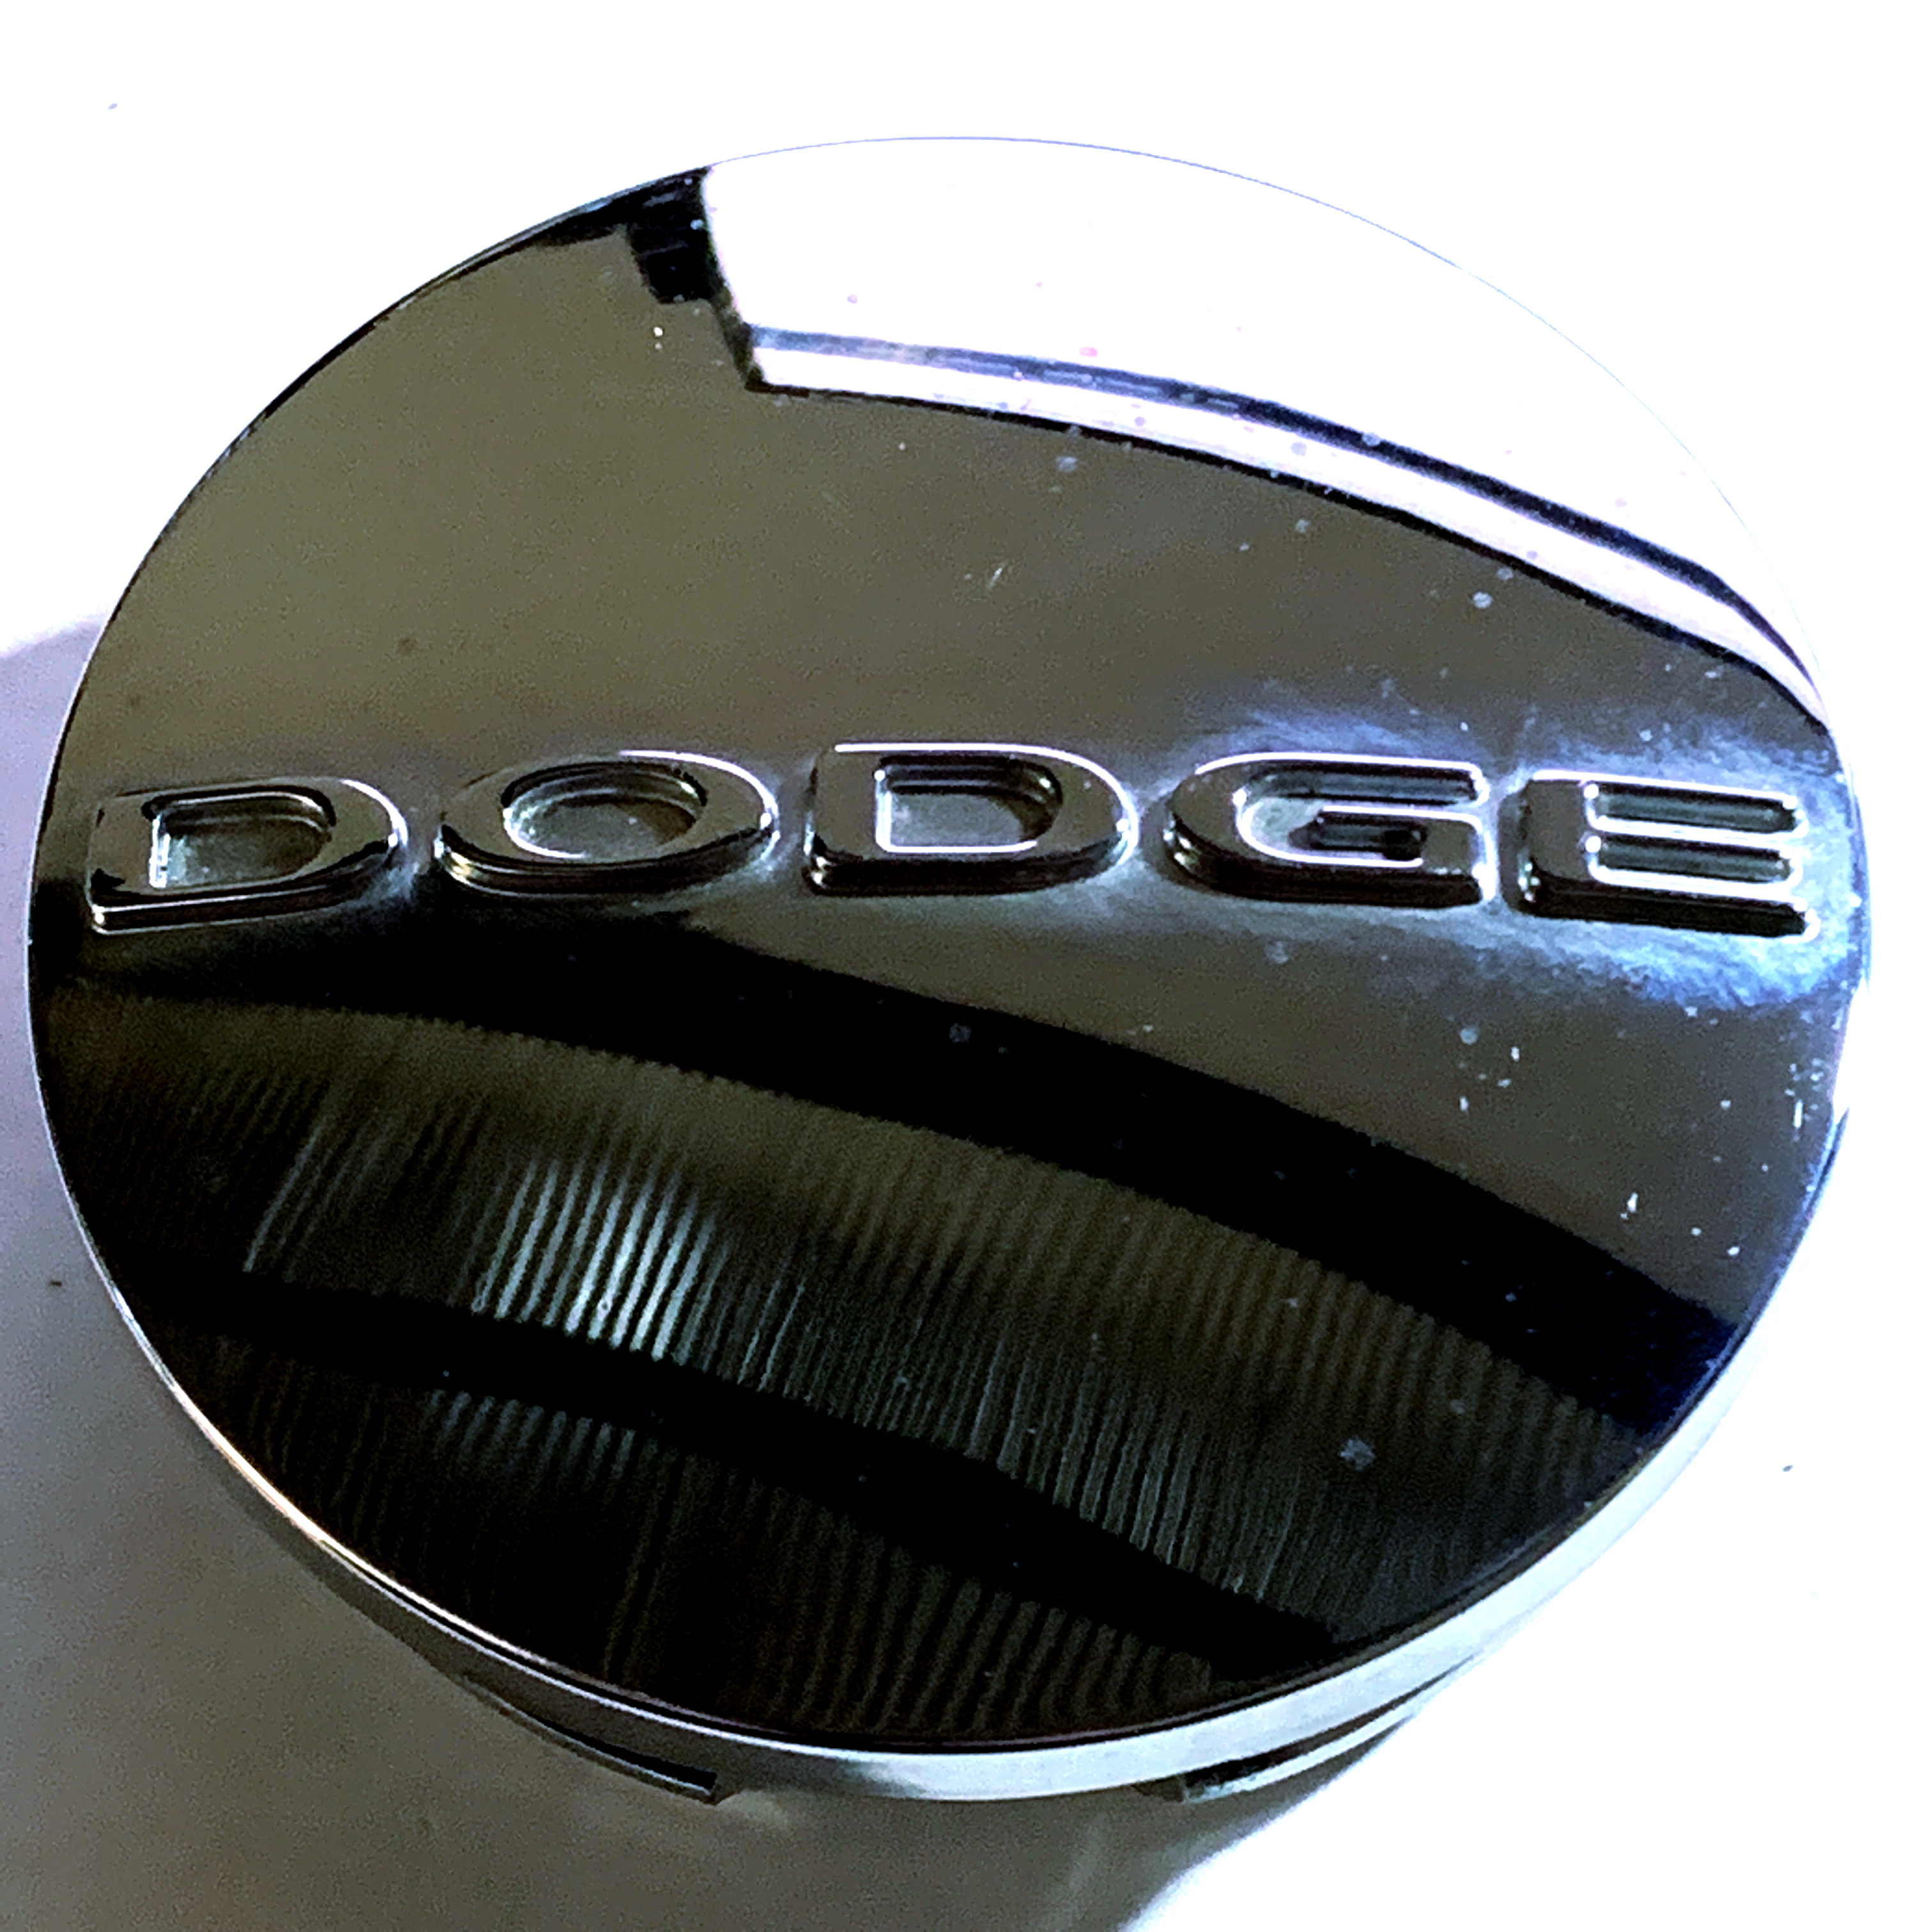 2010-16 Dodge Avenger Caliber Challenger Charger Dart Durango Journey Center Cap